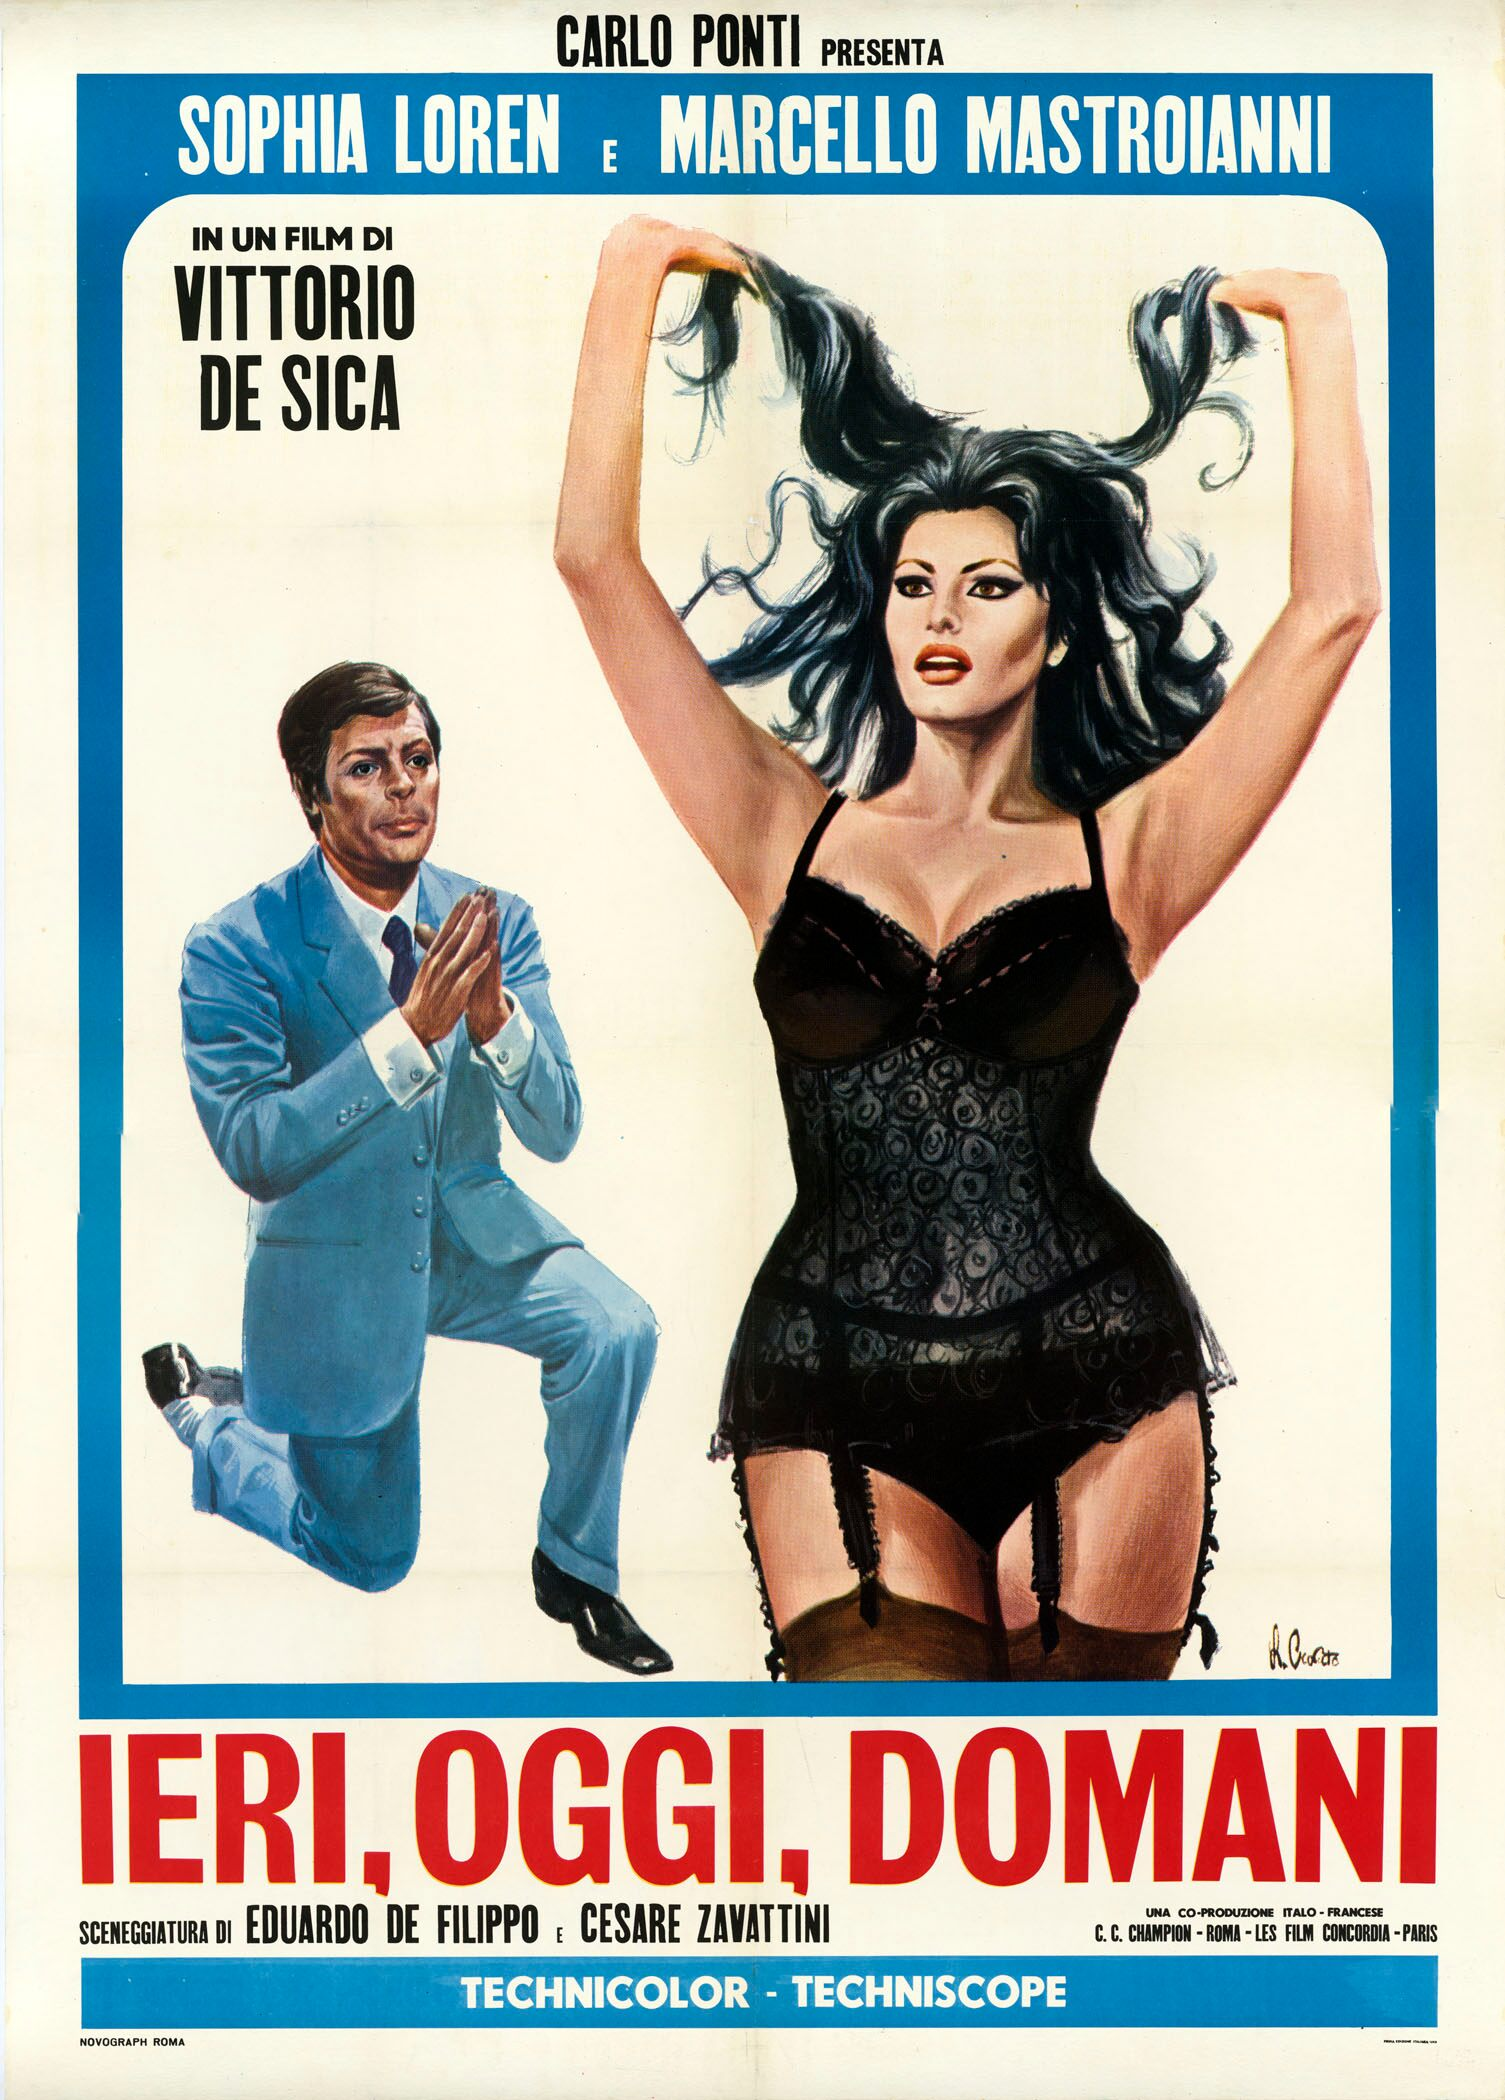 Italian theatrical poster